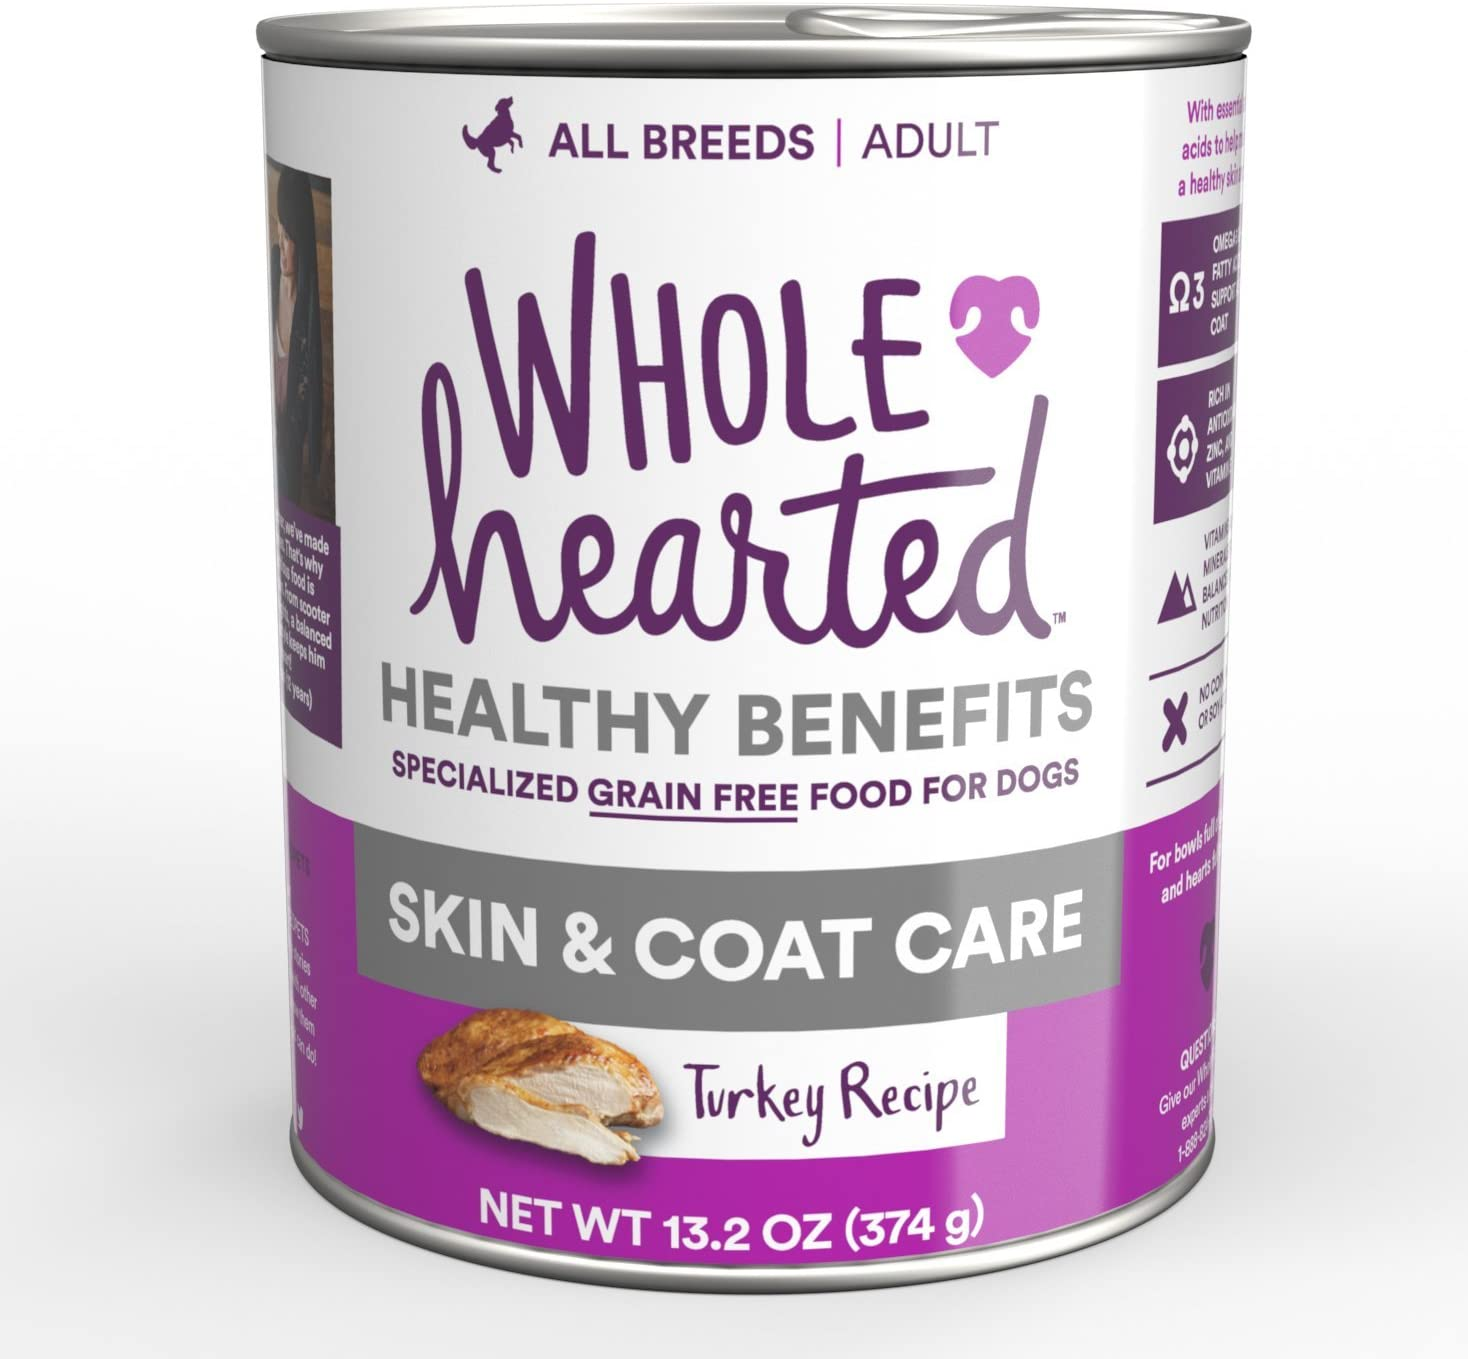 WholeHearted Skin & Coat Care Turkey Recipe Wet Dog Food